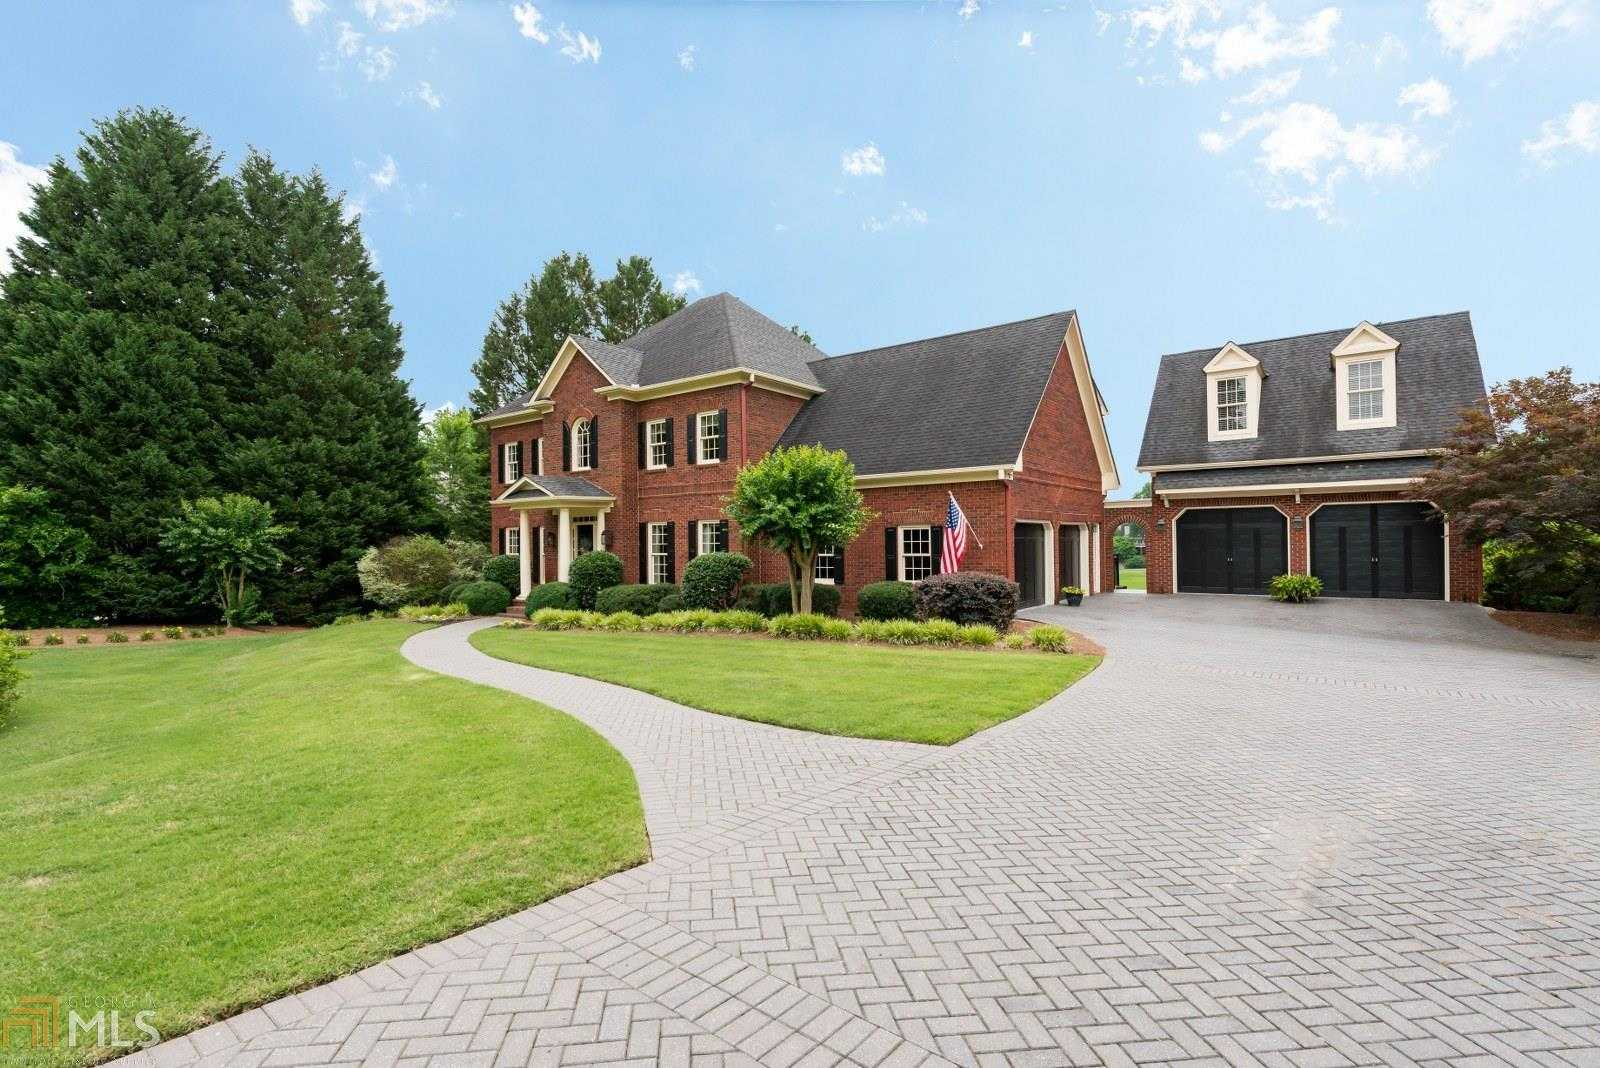 $925,000 - 4Br/5Ba -  for Sale in Marietta Country Club, Kennesaw